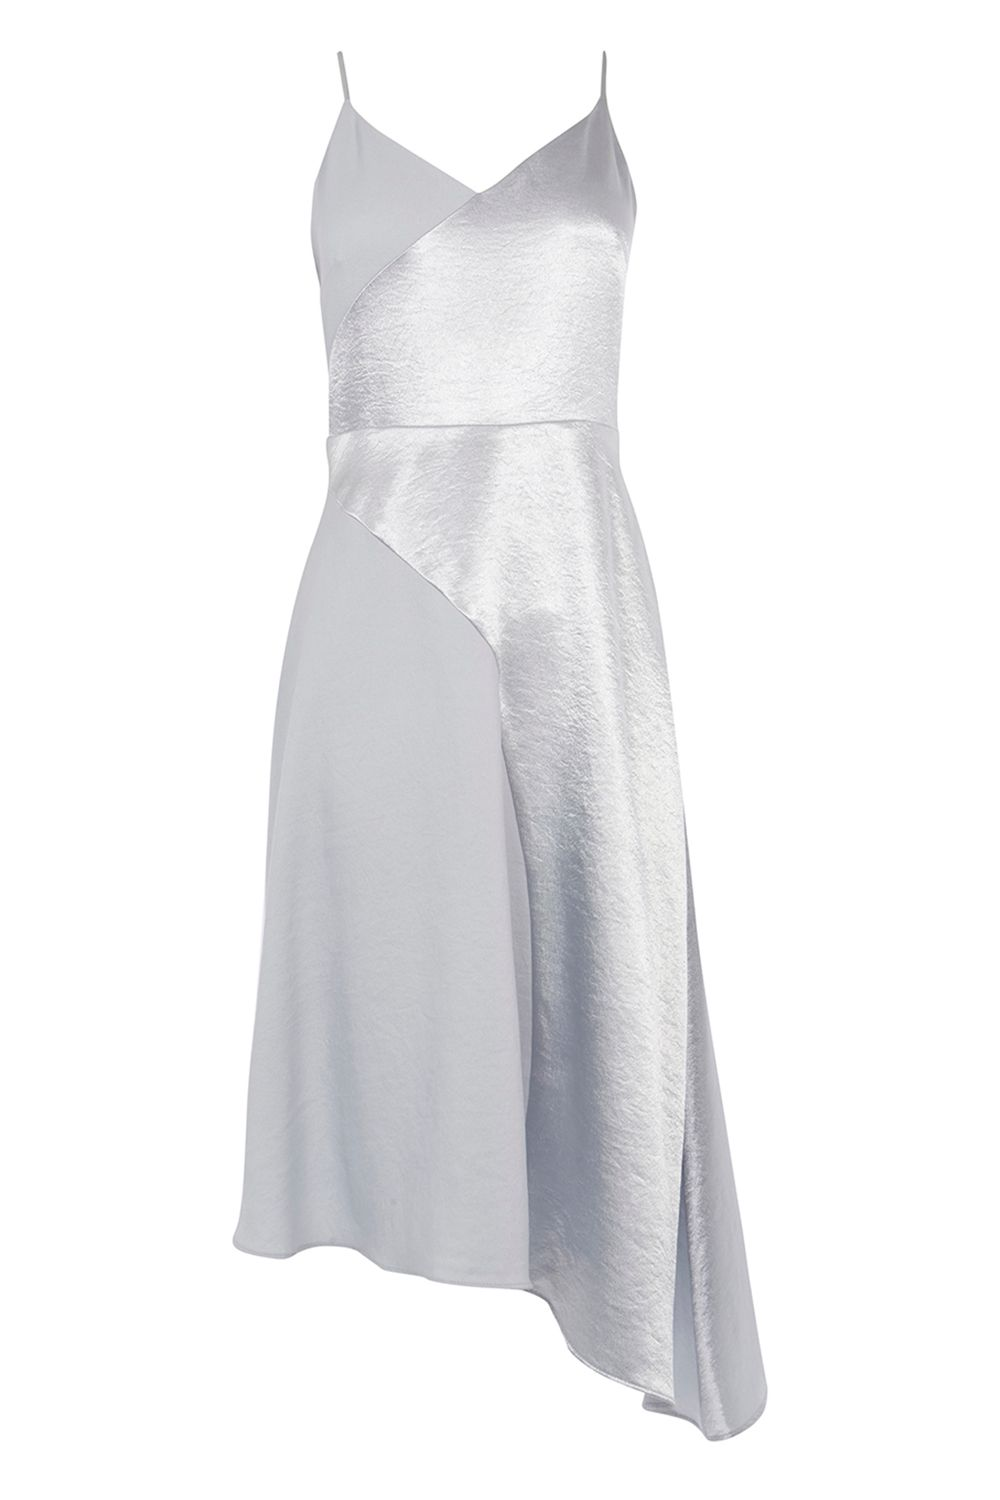 Coast Celmmie Cami Dress, Silver